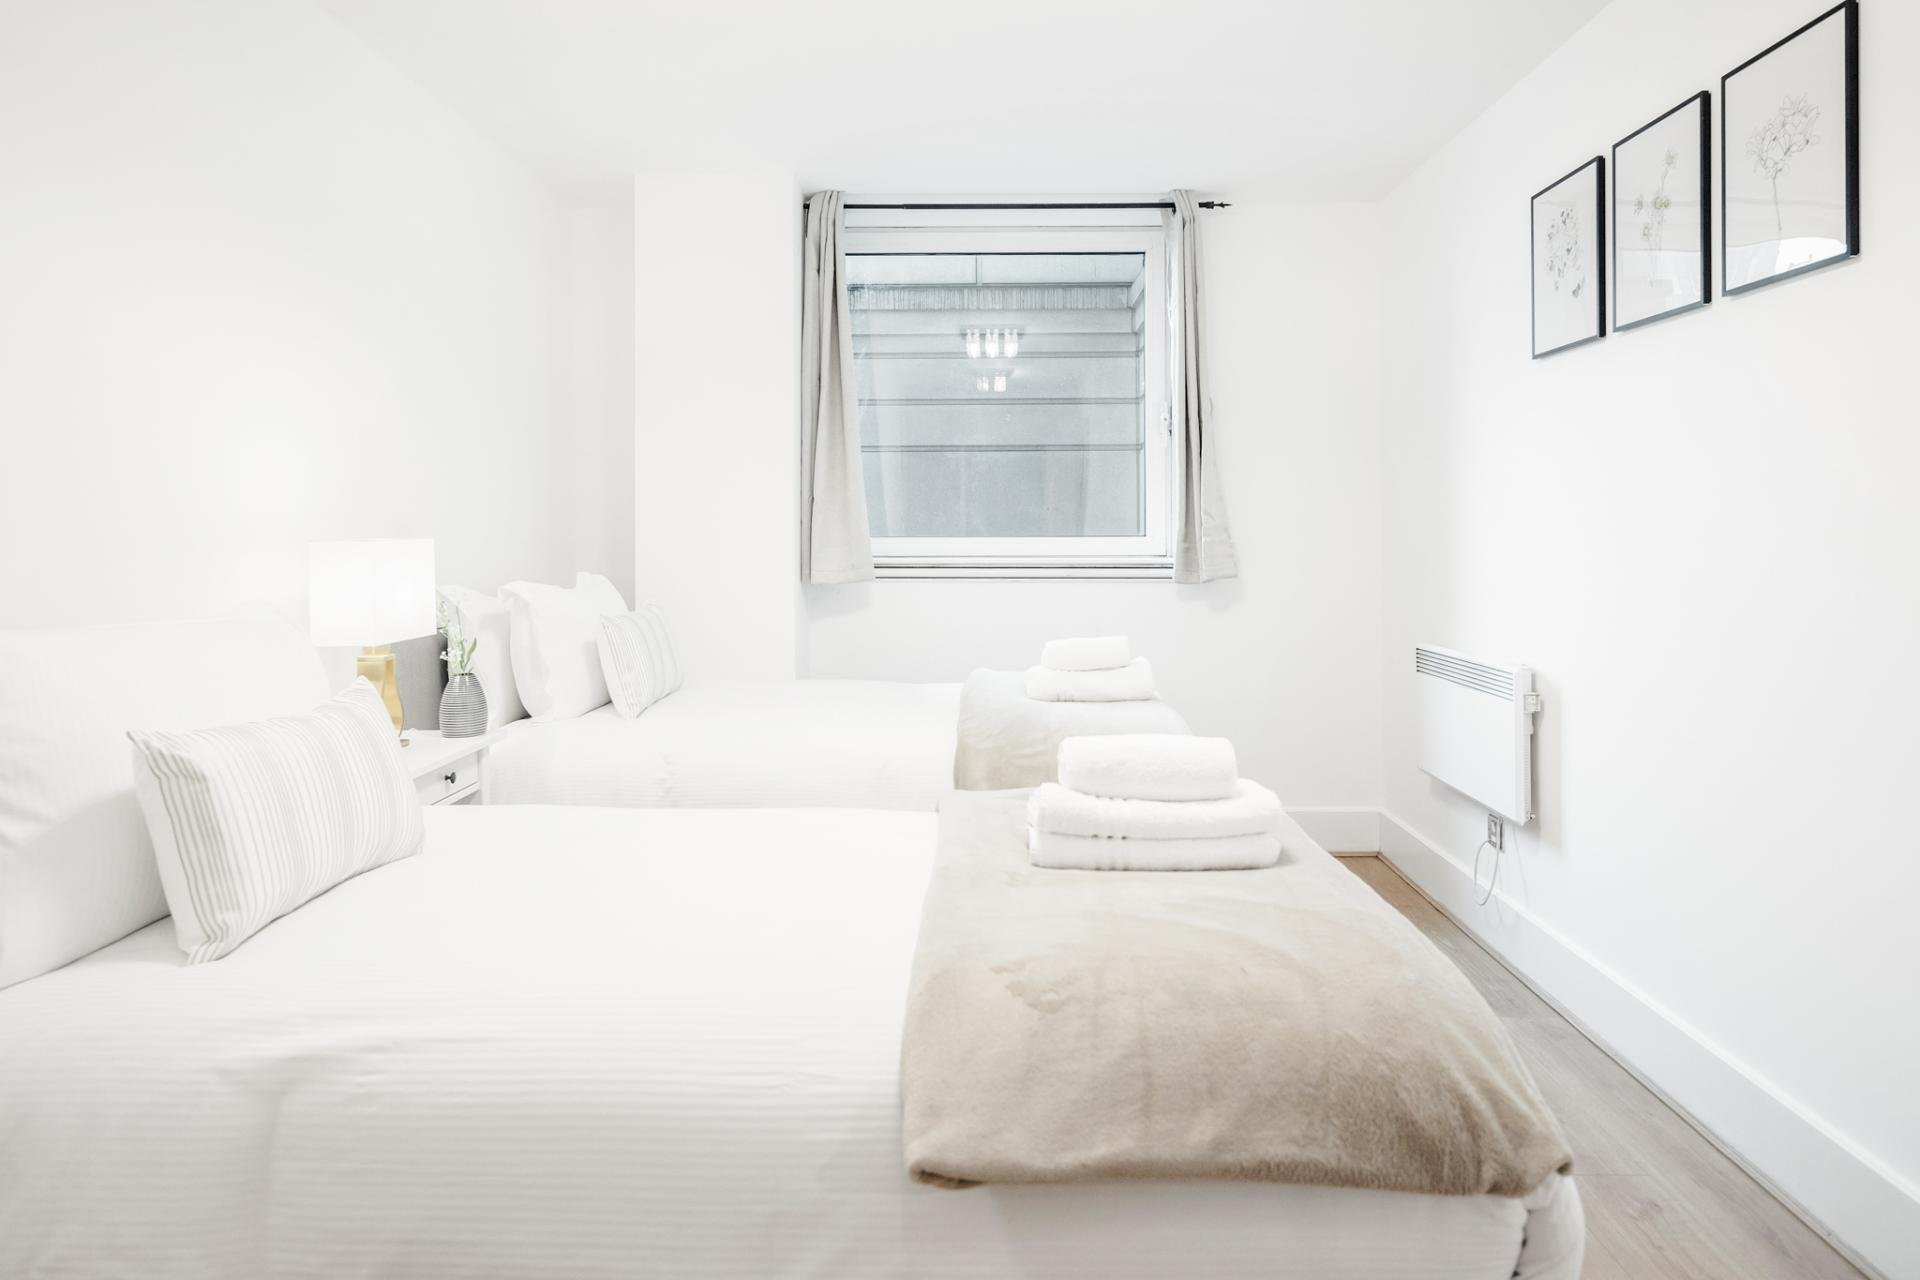 Beds at St Georges Wharf Apartment, Vauxhall, London